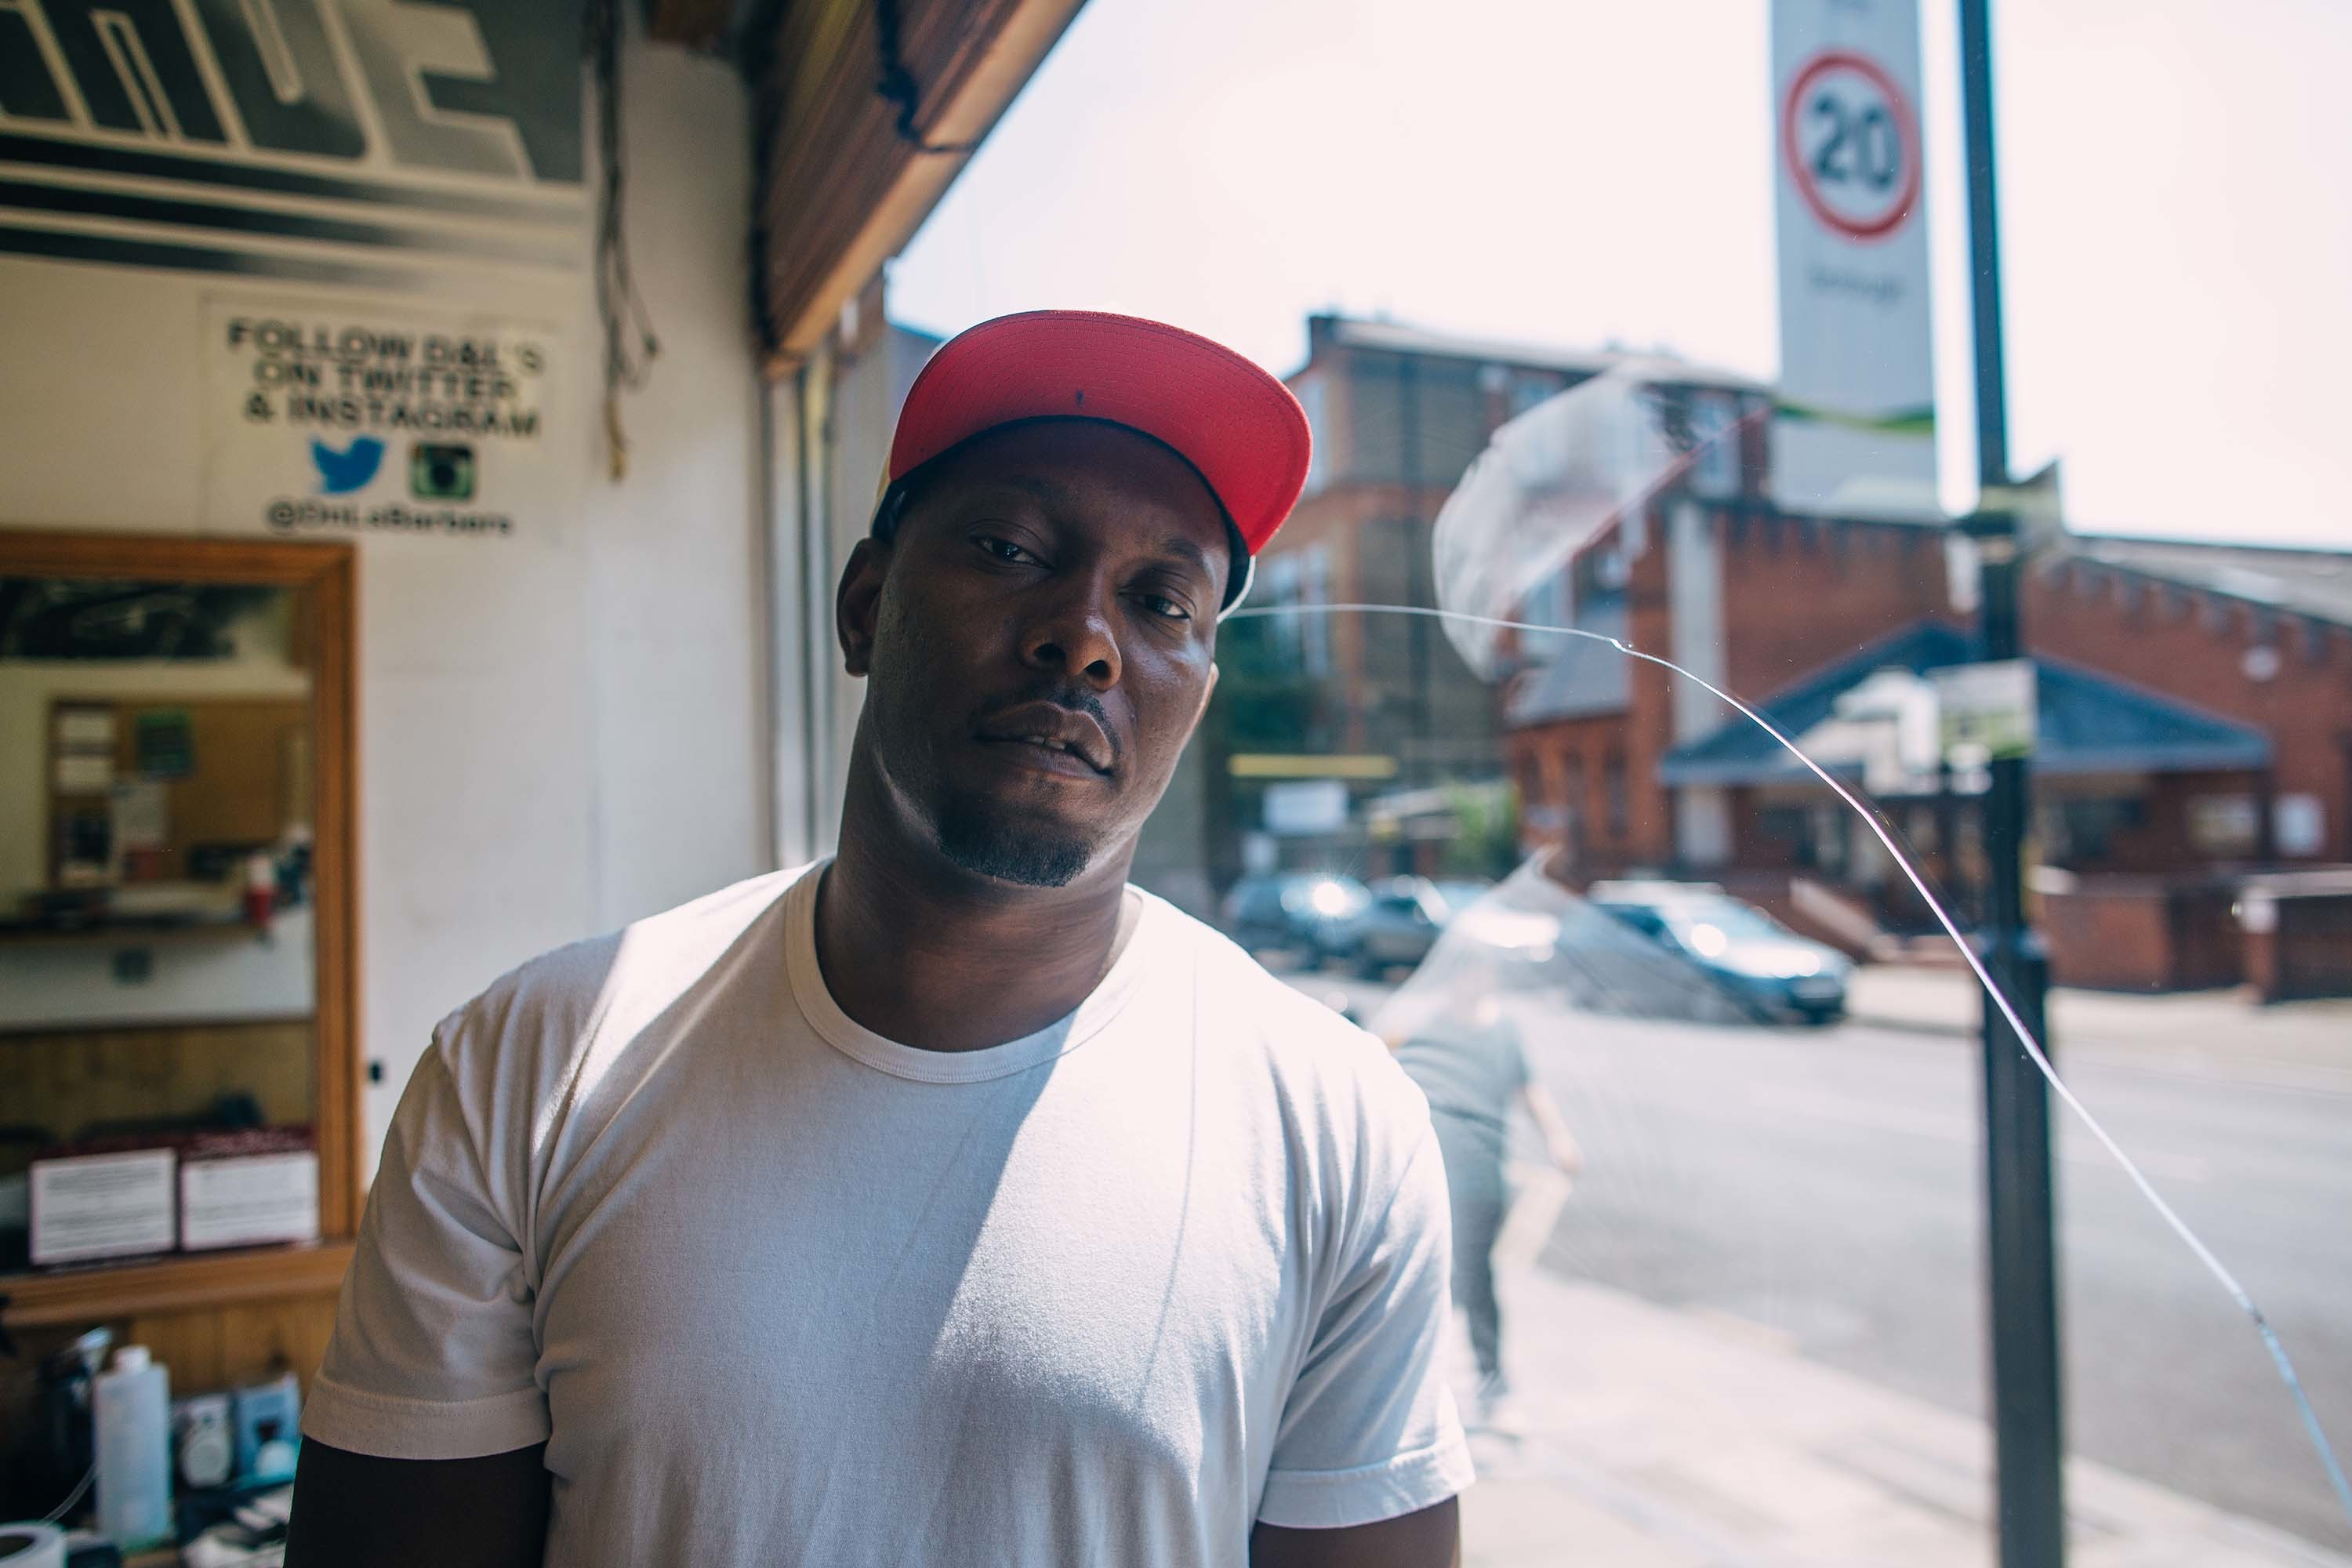 Dizzee Rascal and Skepta join forces on new song 'Money Right'